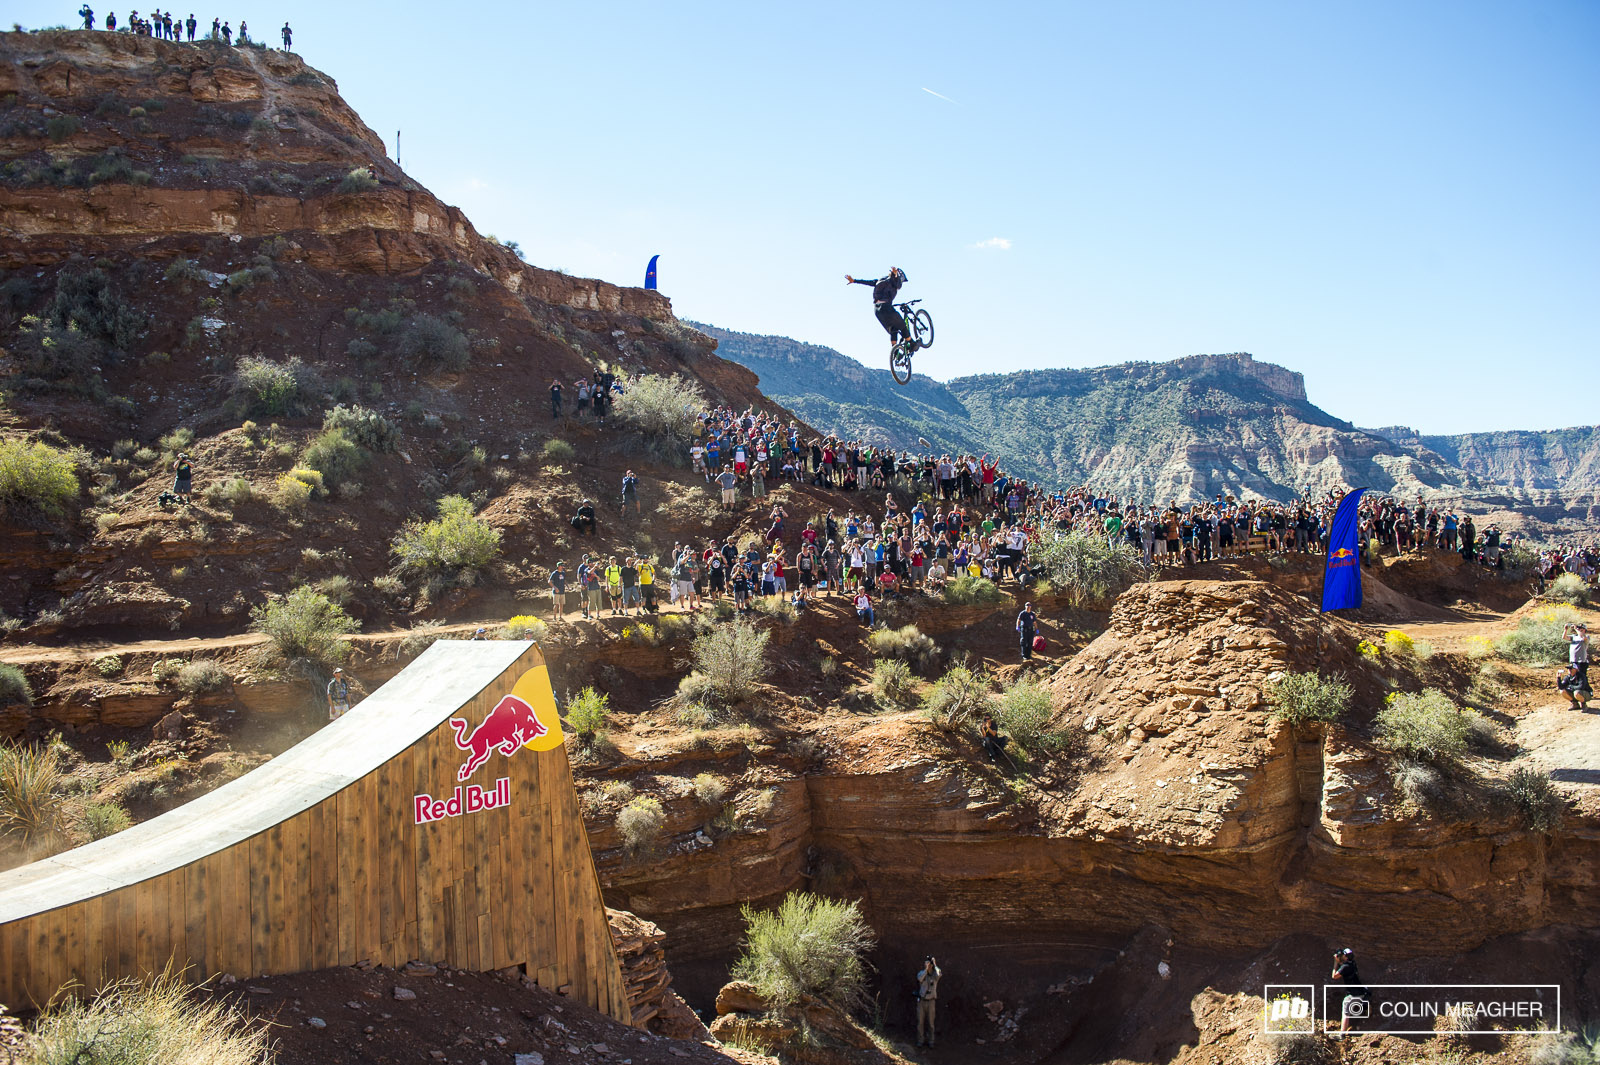 Throwing down Aggy sending it. 57 feet. Almost 20 meters. And a suicide no hander Sick